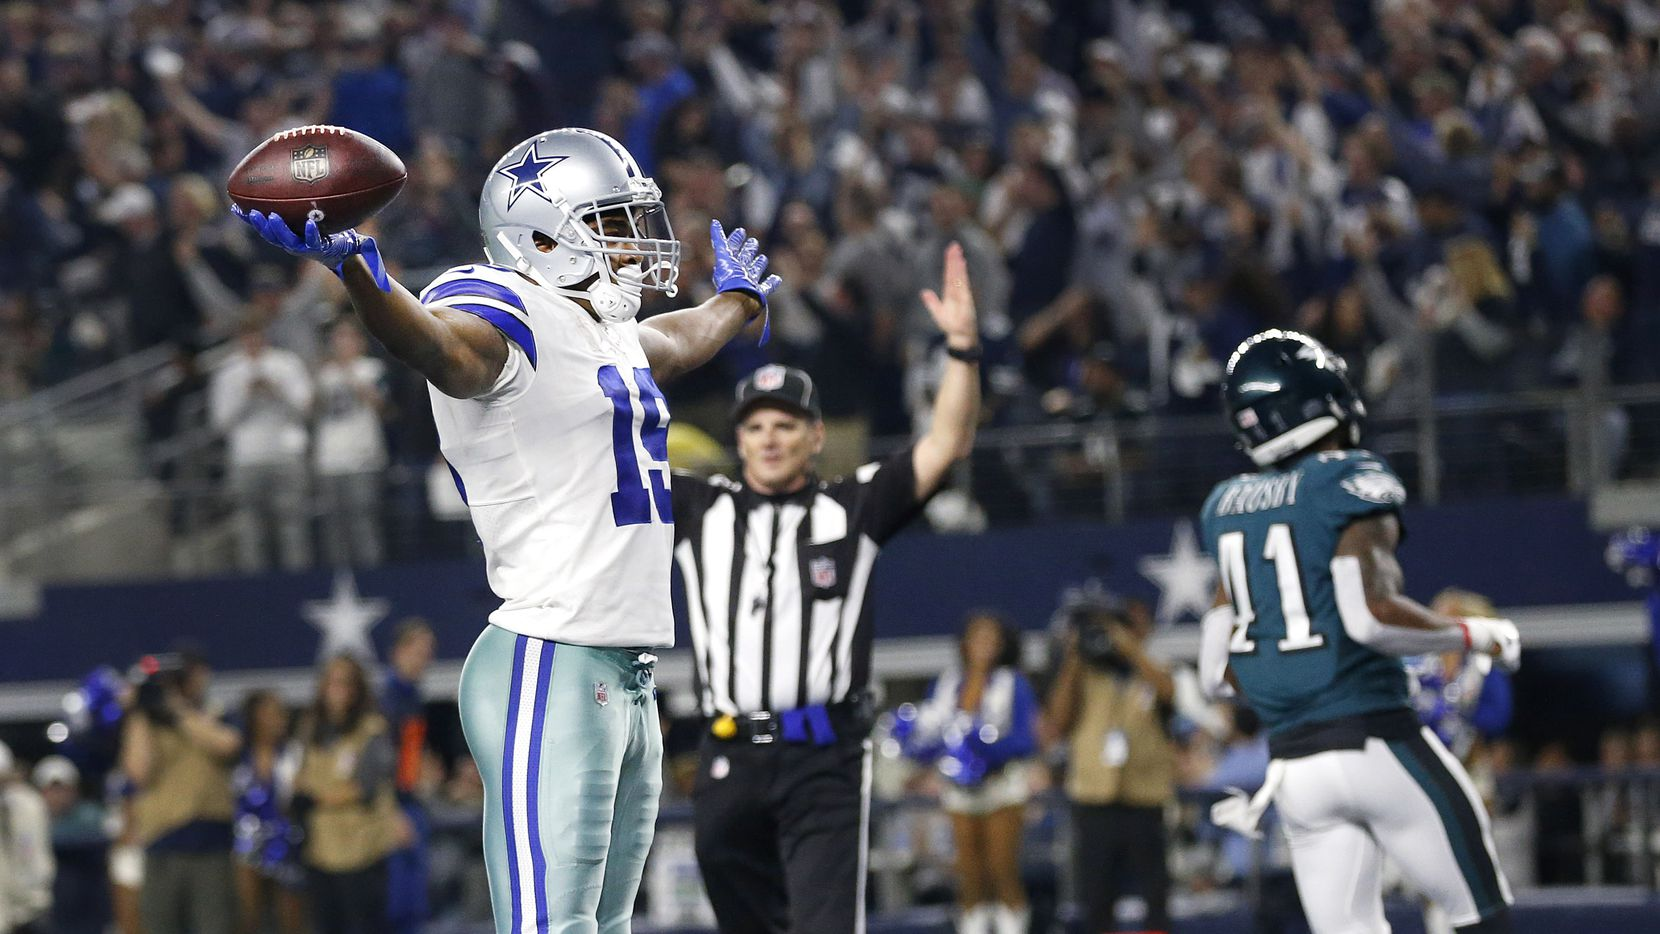 Dallas Cowboys wide receiver Amari Cooper (19) celebrates a touchdown after a long fourth quarter catch and run against Philadelphia Eagles cornerback DeVante Bausby (41) at AT&T Stadium in Arlington, Texas, Sunday, December 9, 2018. The Cowboys won, 29-23. (Tom Fox/The Dallas Morning News)